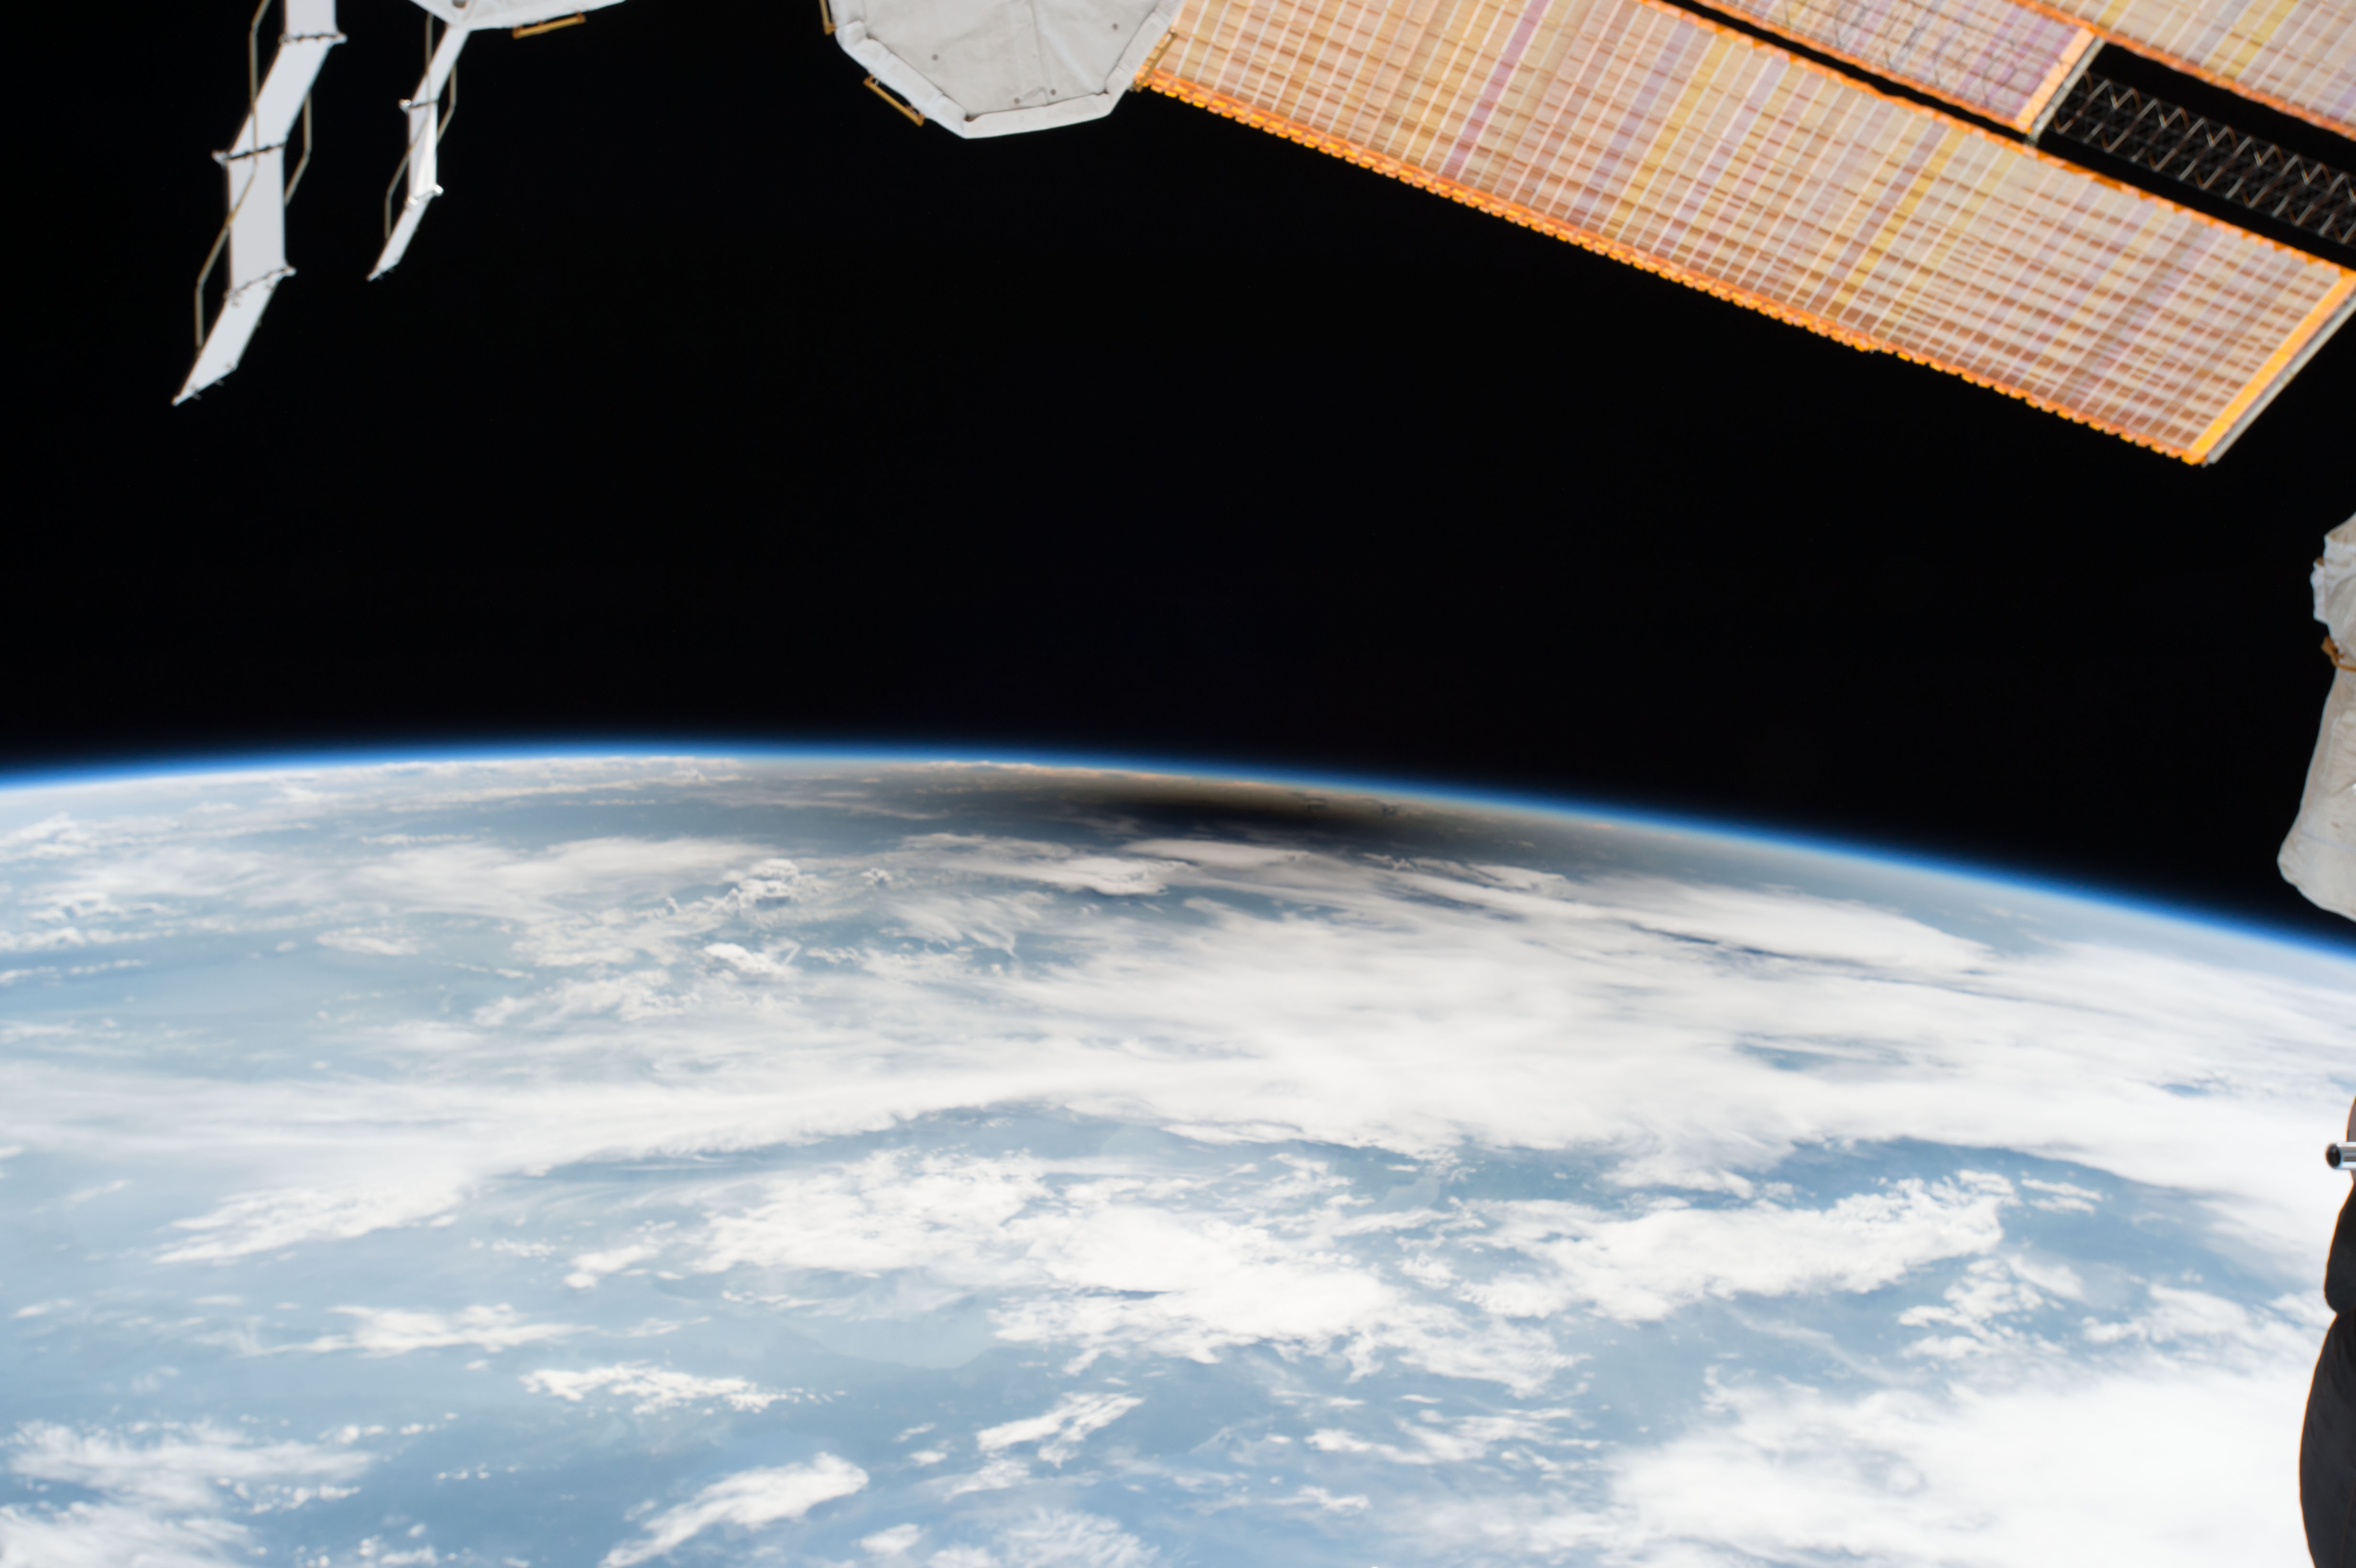 The Eclipse 2017 Umbra Viewed from Space   NASA